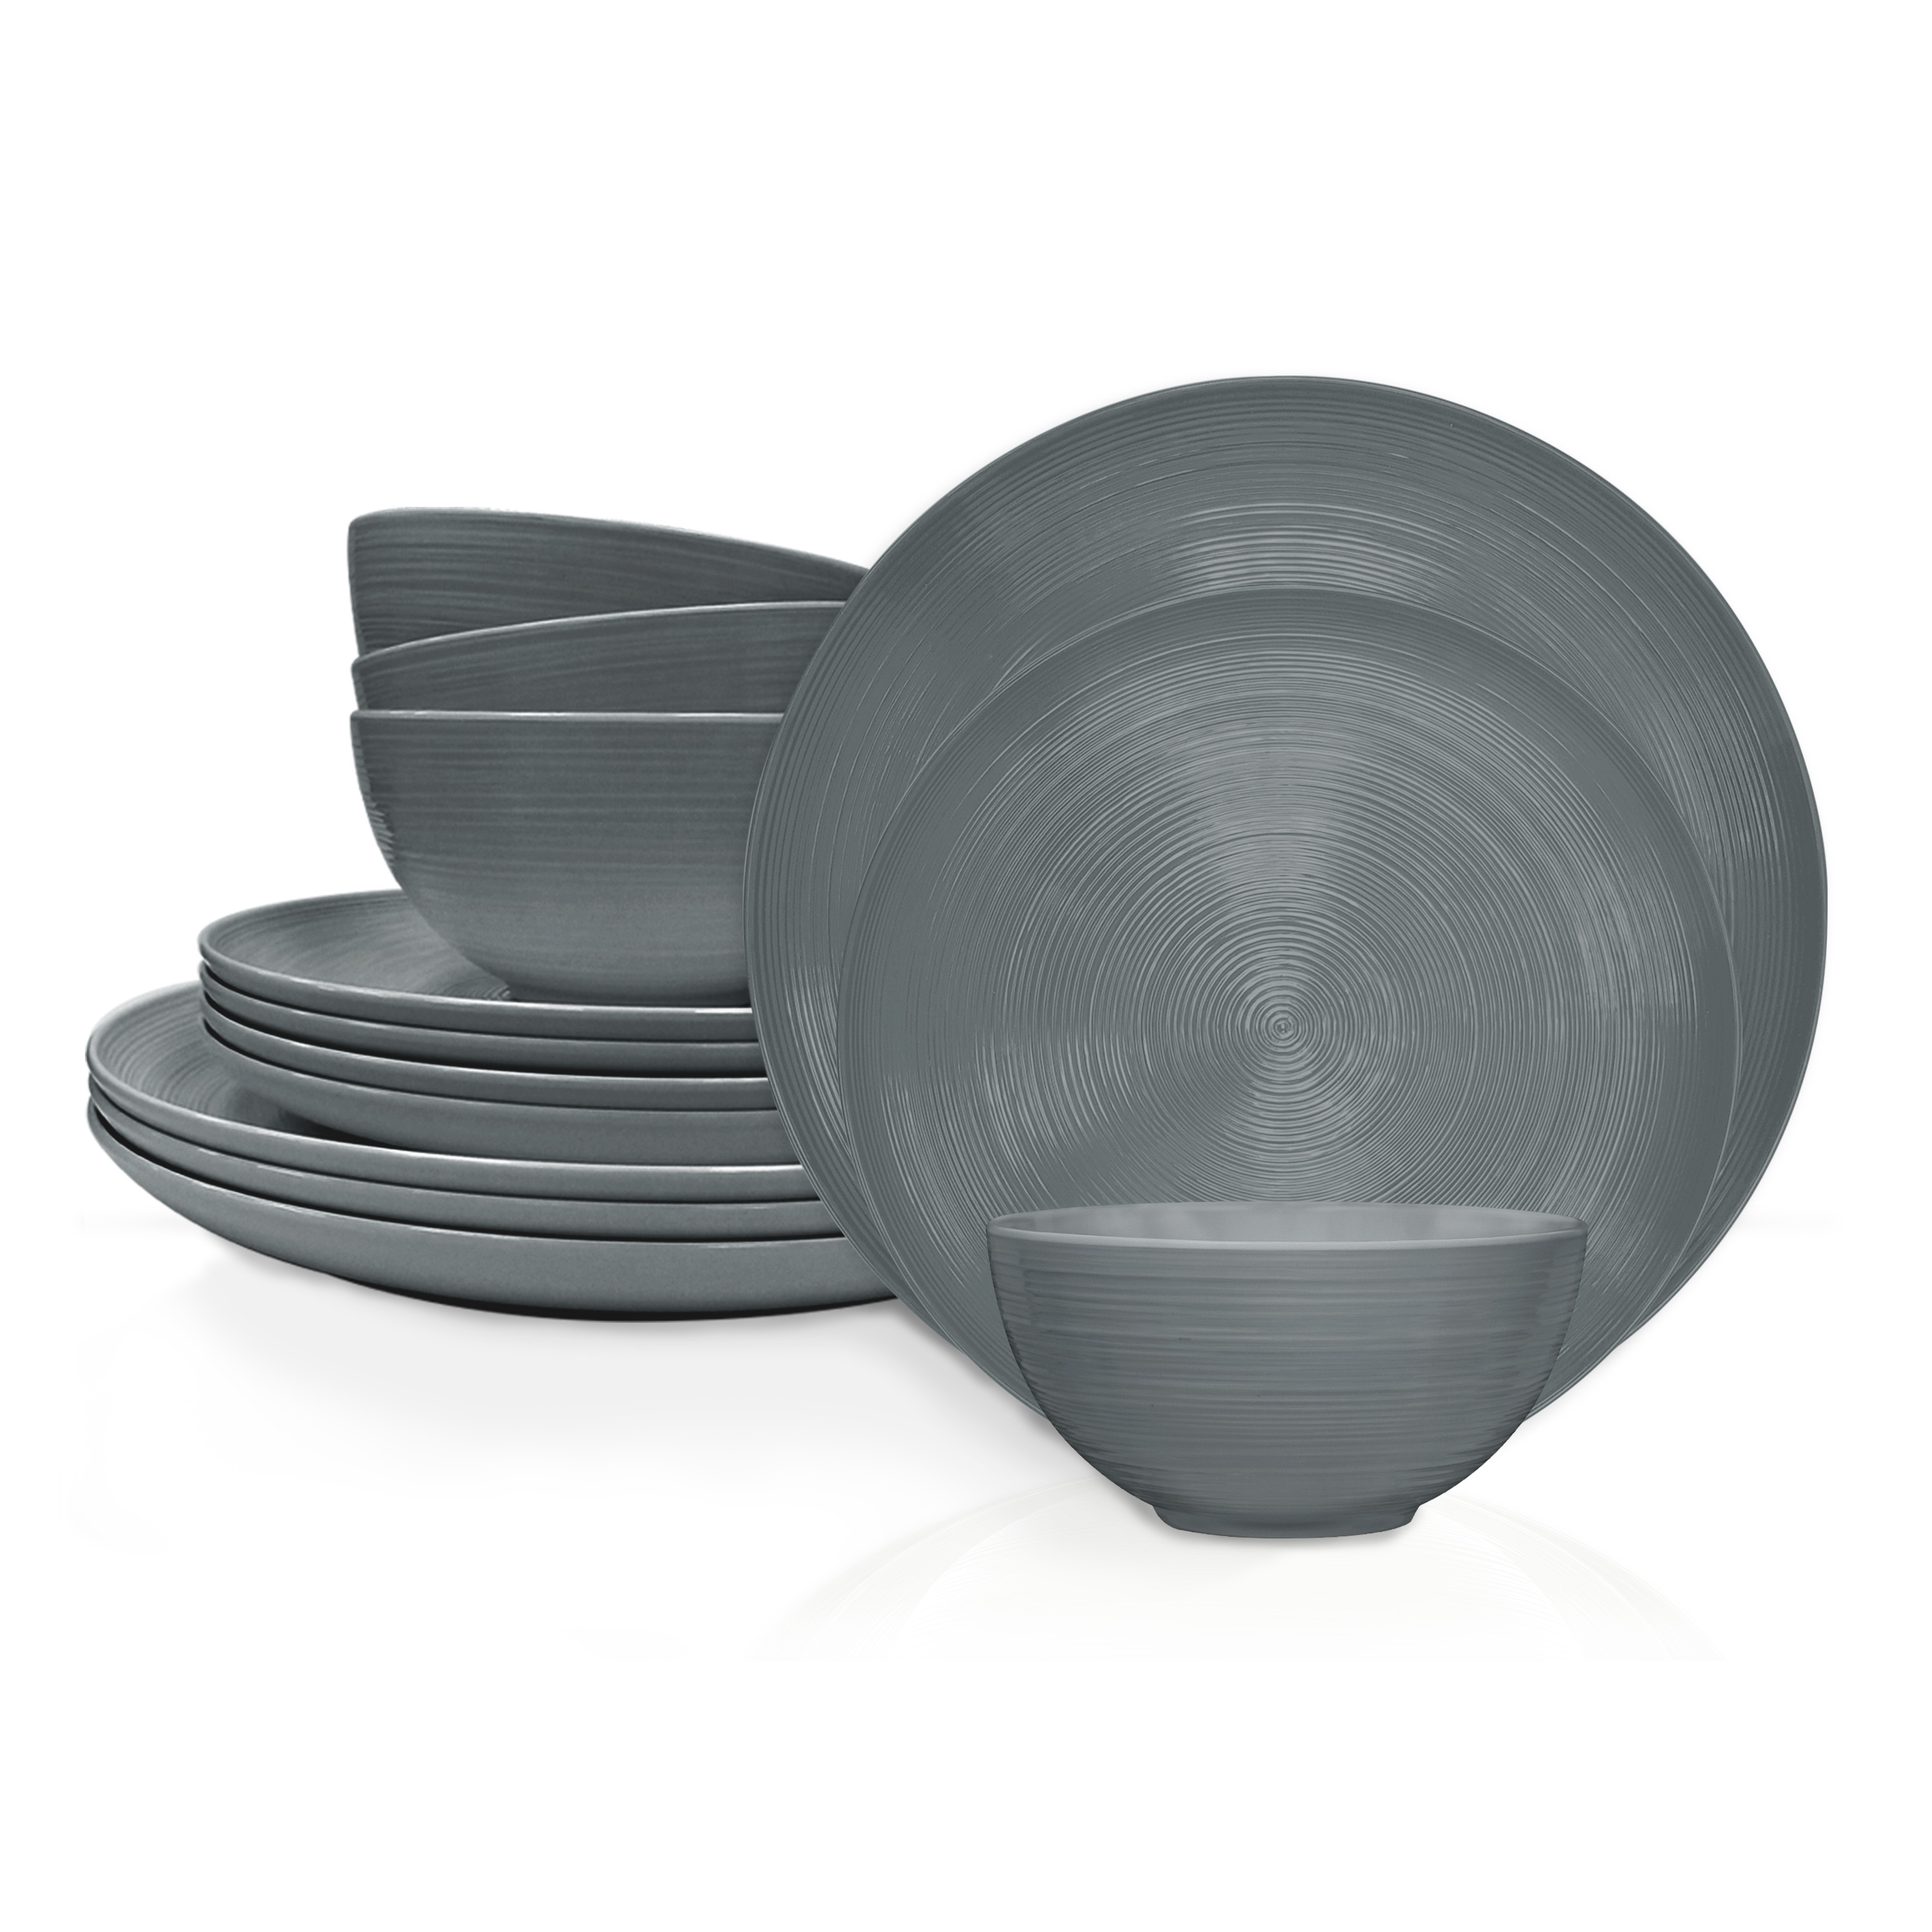 American Conventional Plate & Bowl Sets, Charcoal, 12-piece set slideshow image 2